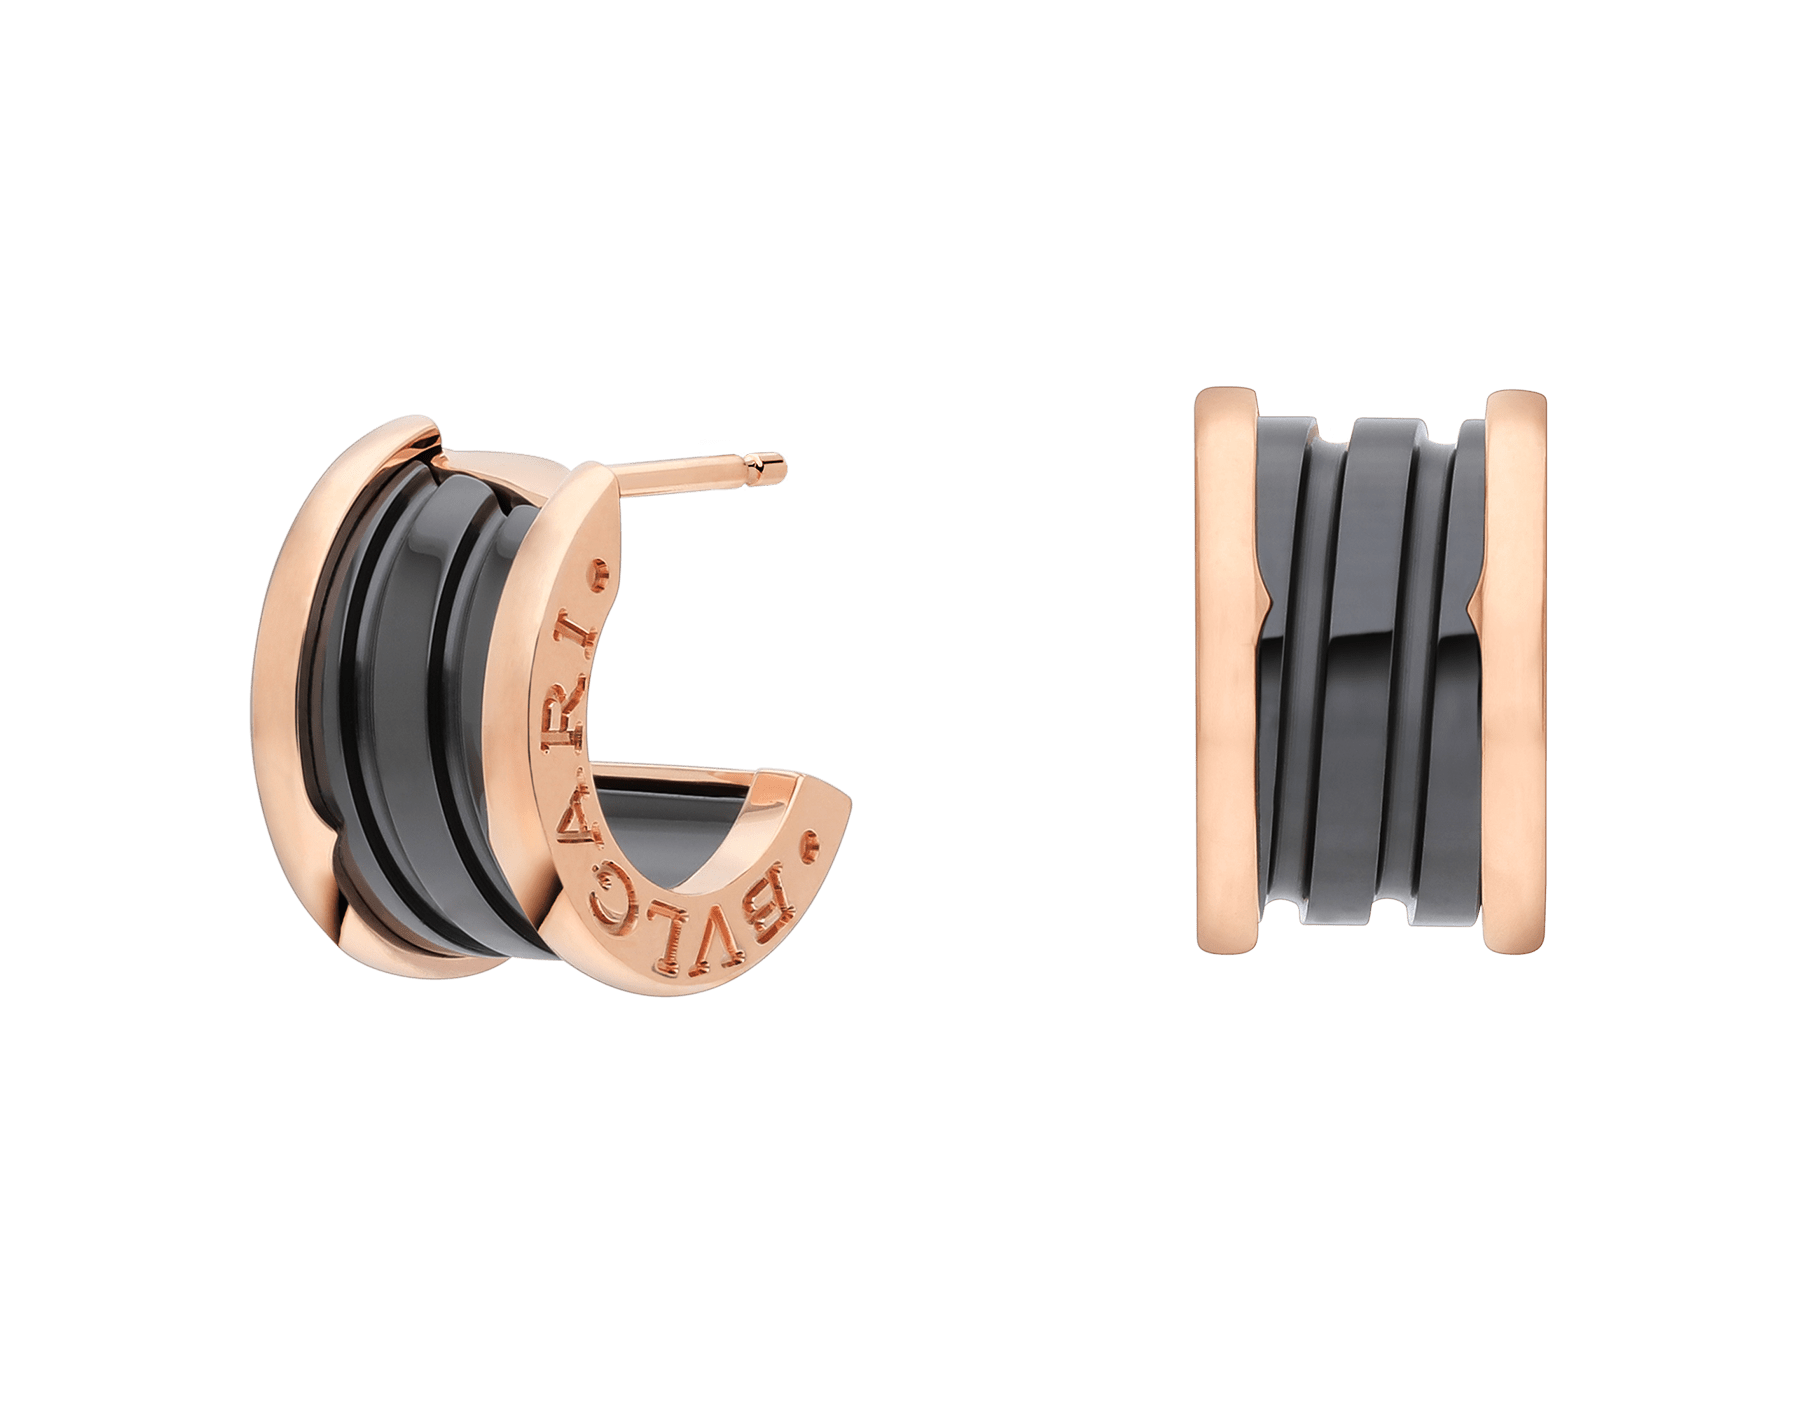 B.zero1 earrings in 18kt rose gold and black ceramic. 347405 image 1